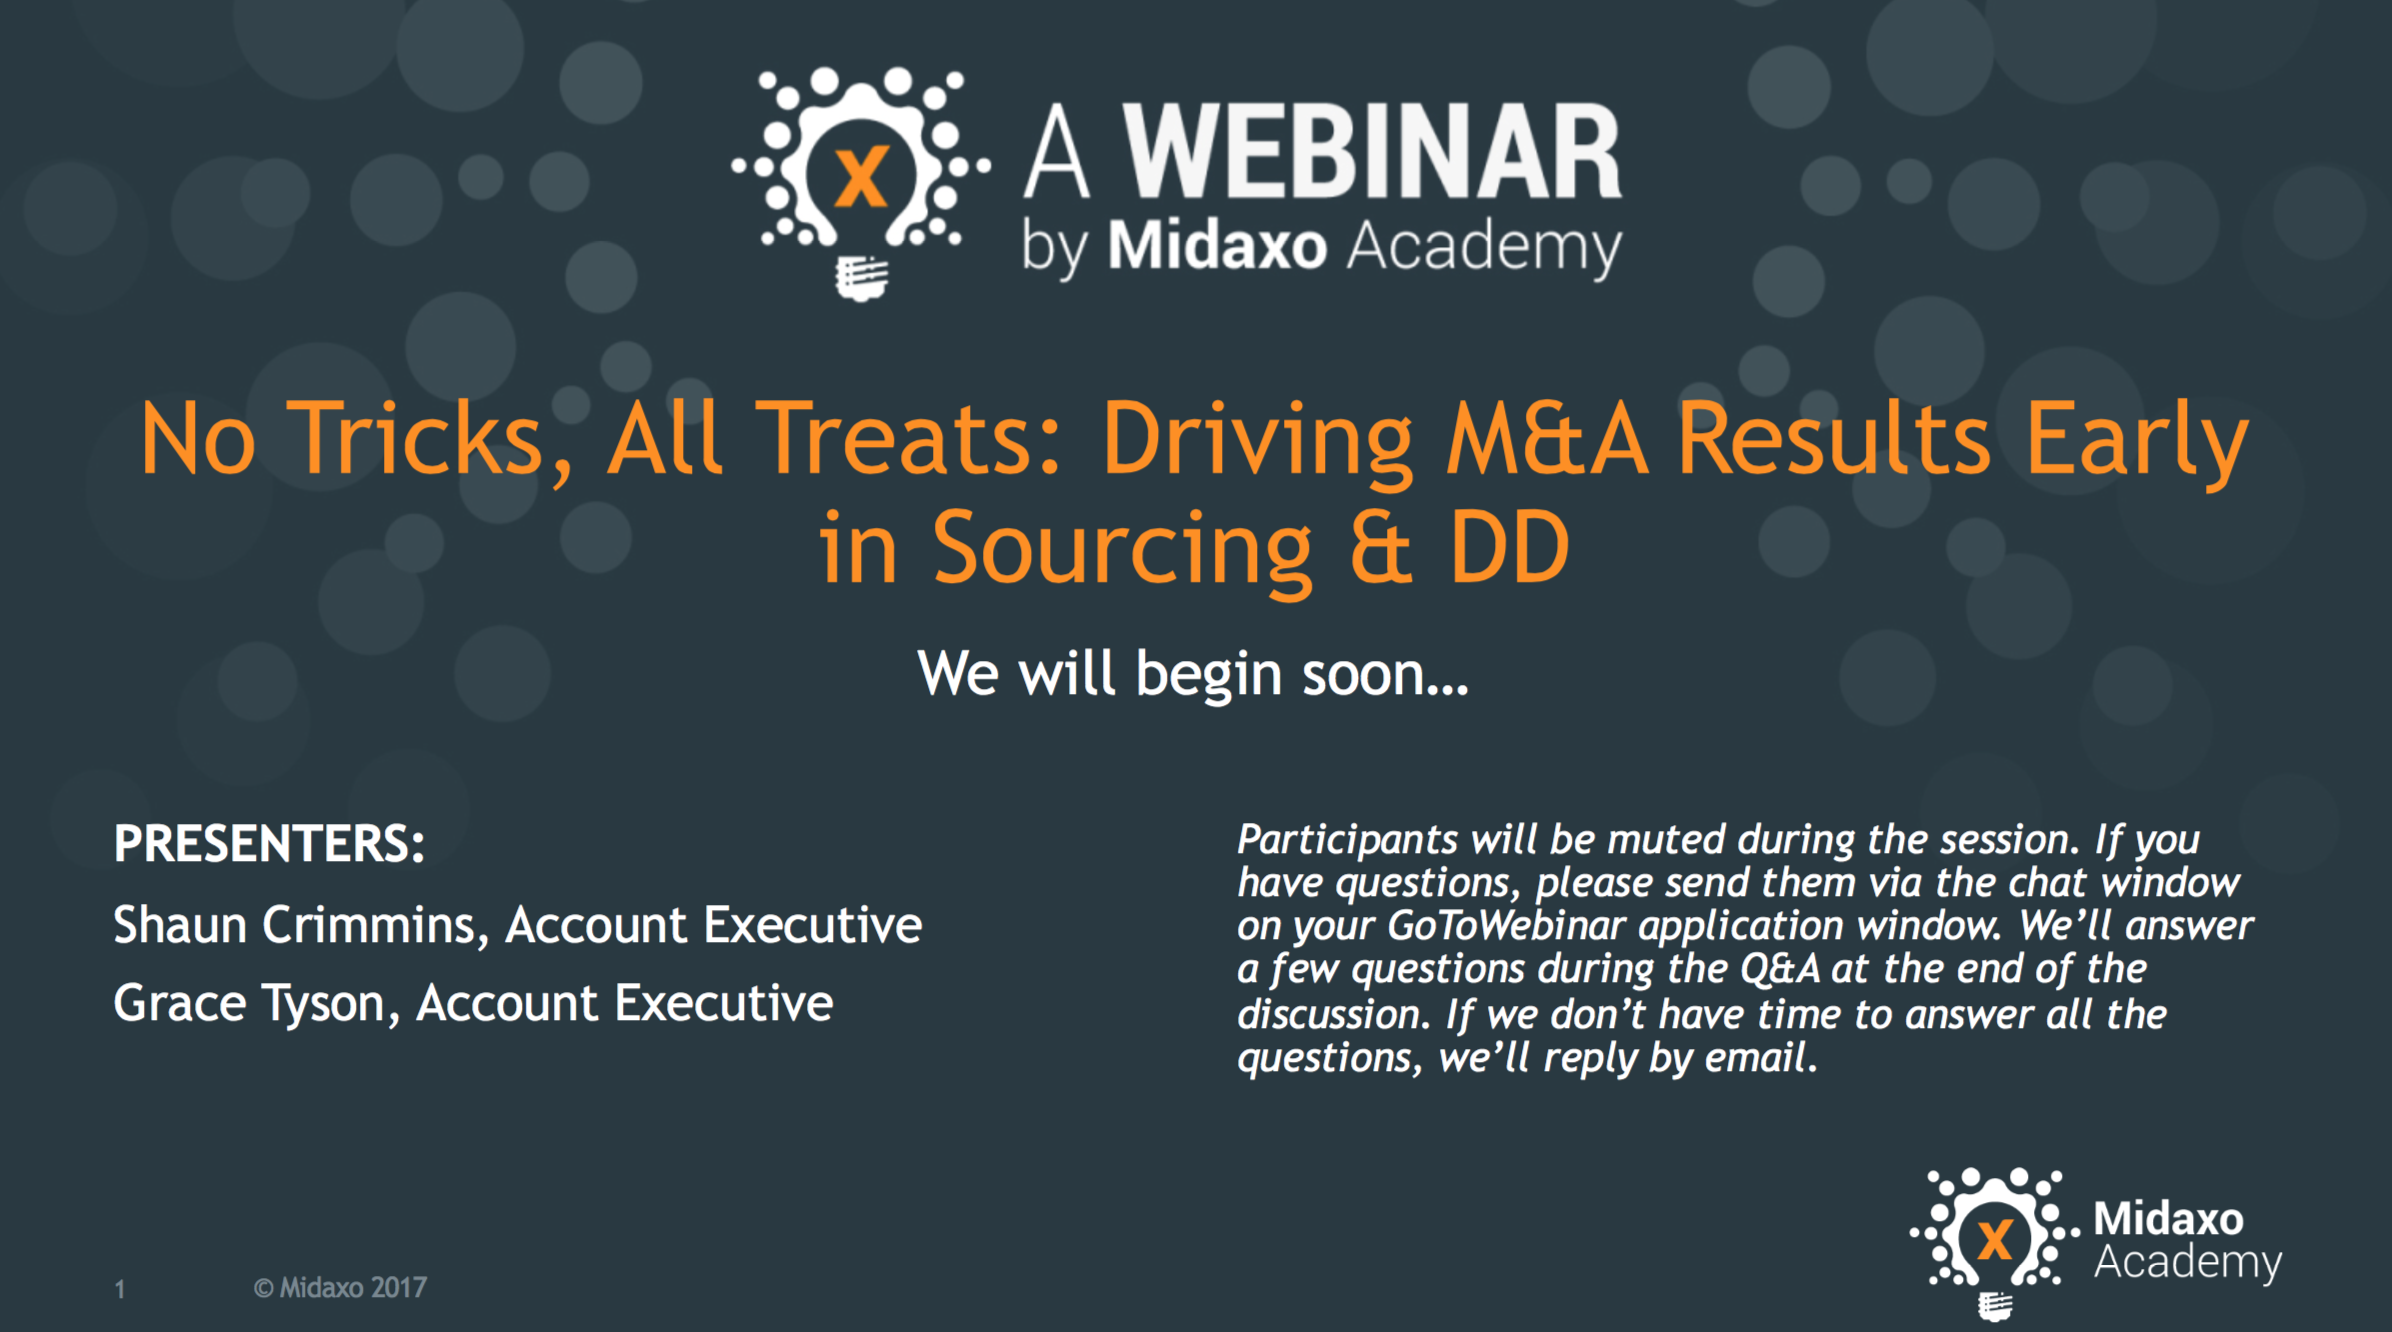 Group Demo, Part I - No Tricks, All Treats: Driving M&A Results Early in Sourcing & DD